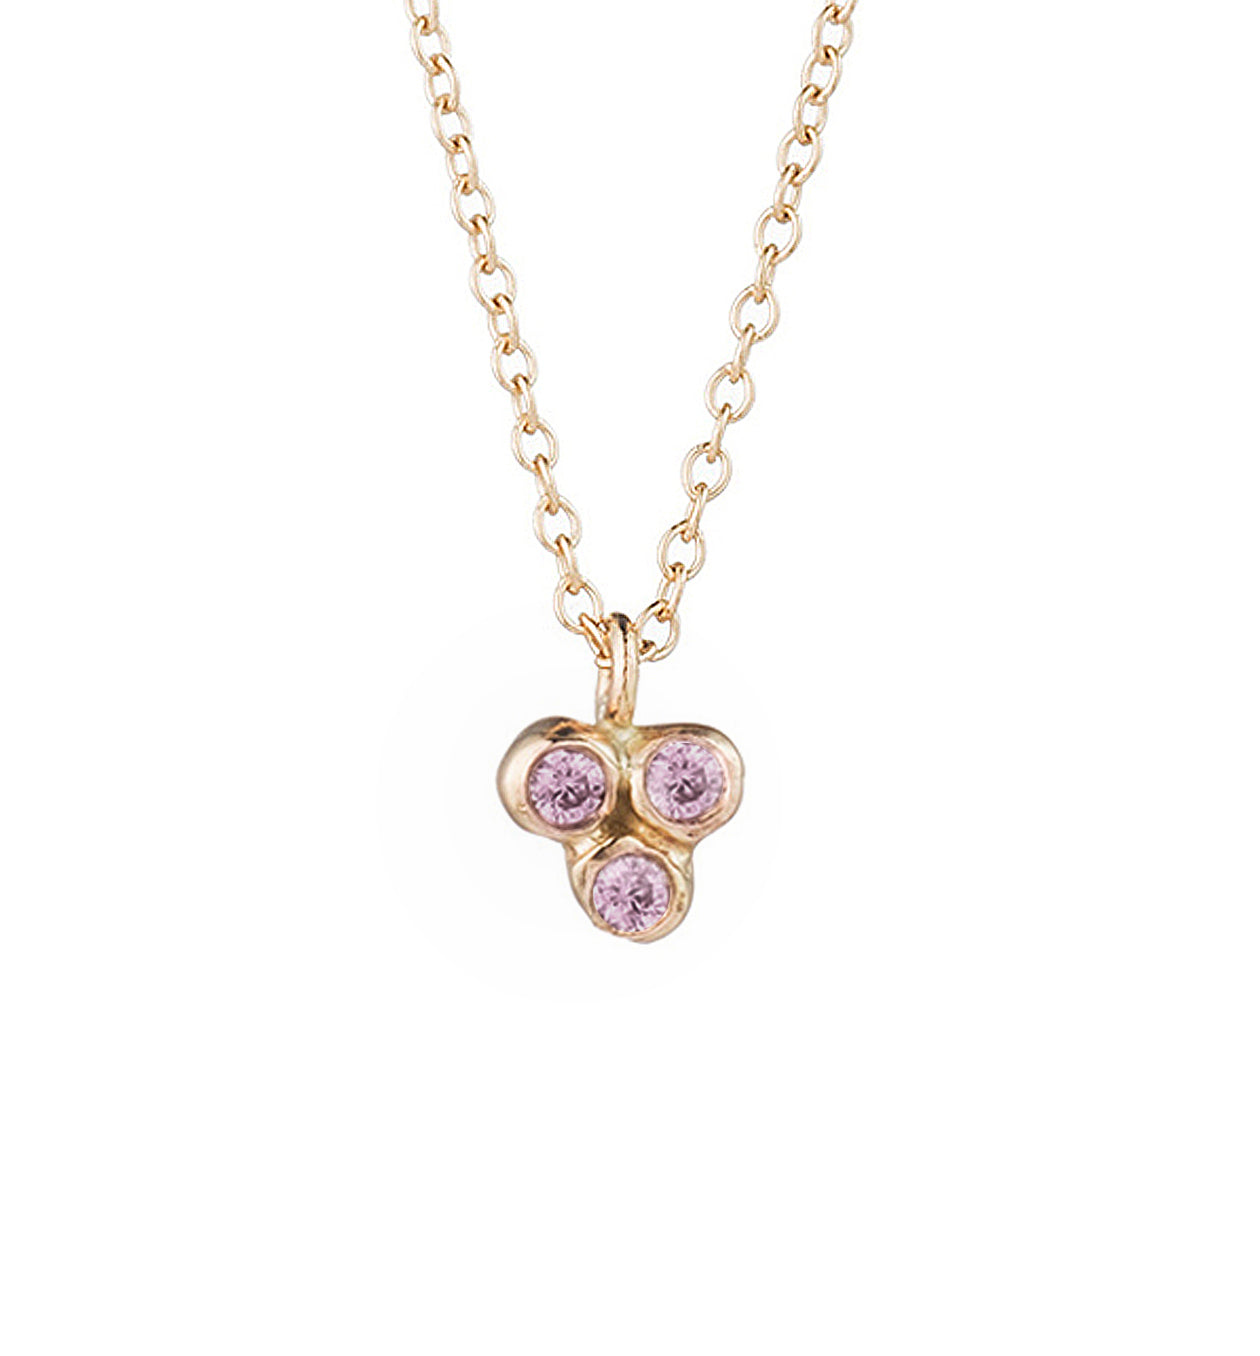 Cluster Sea Anemone Necklace Pink Sapphire